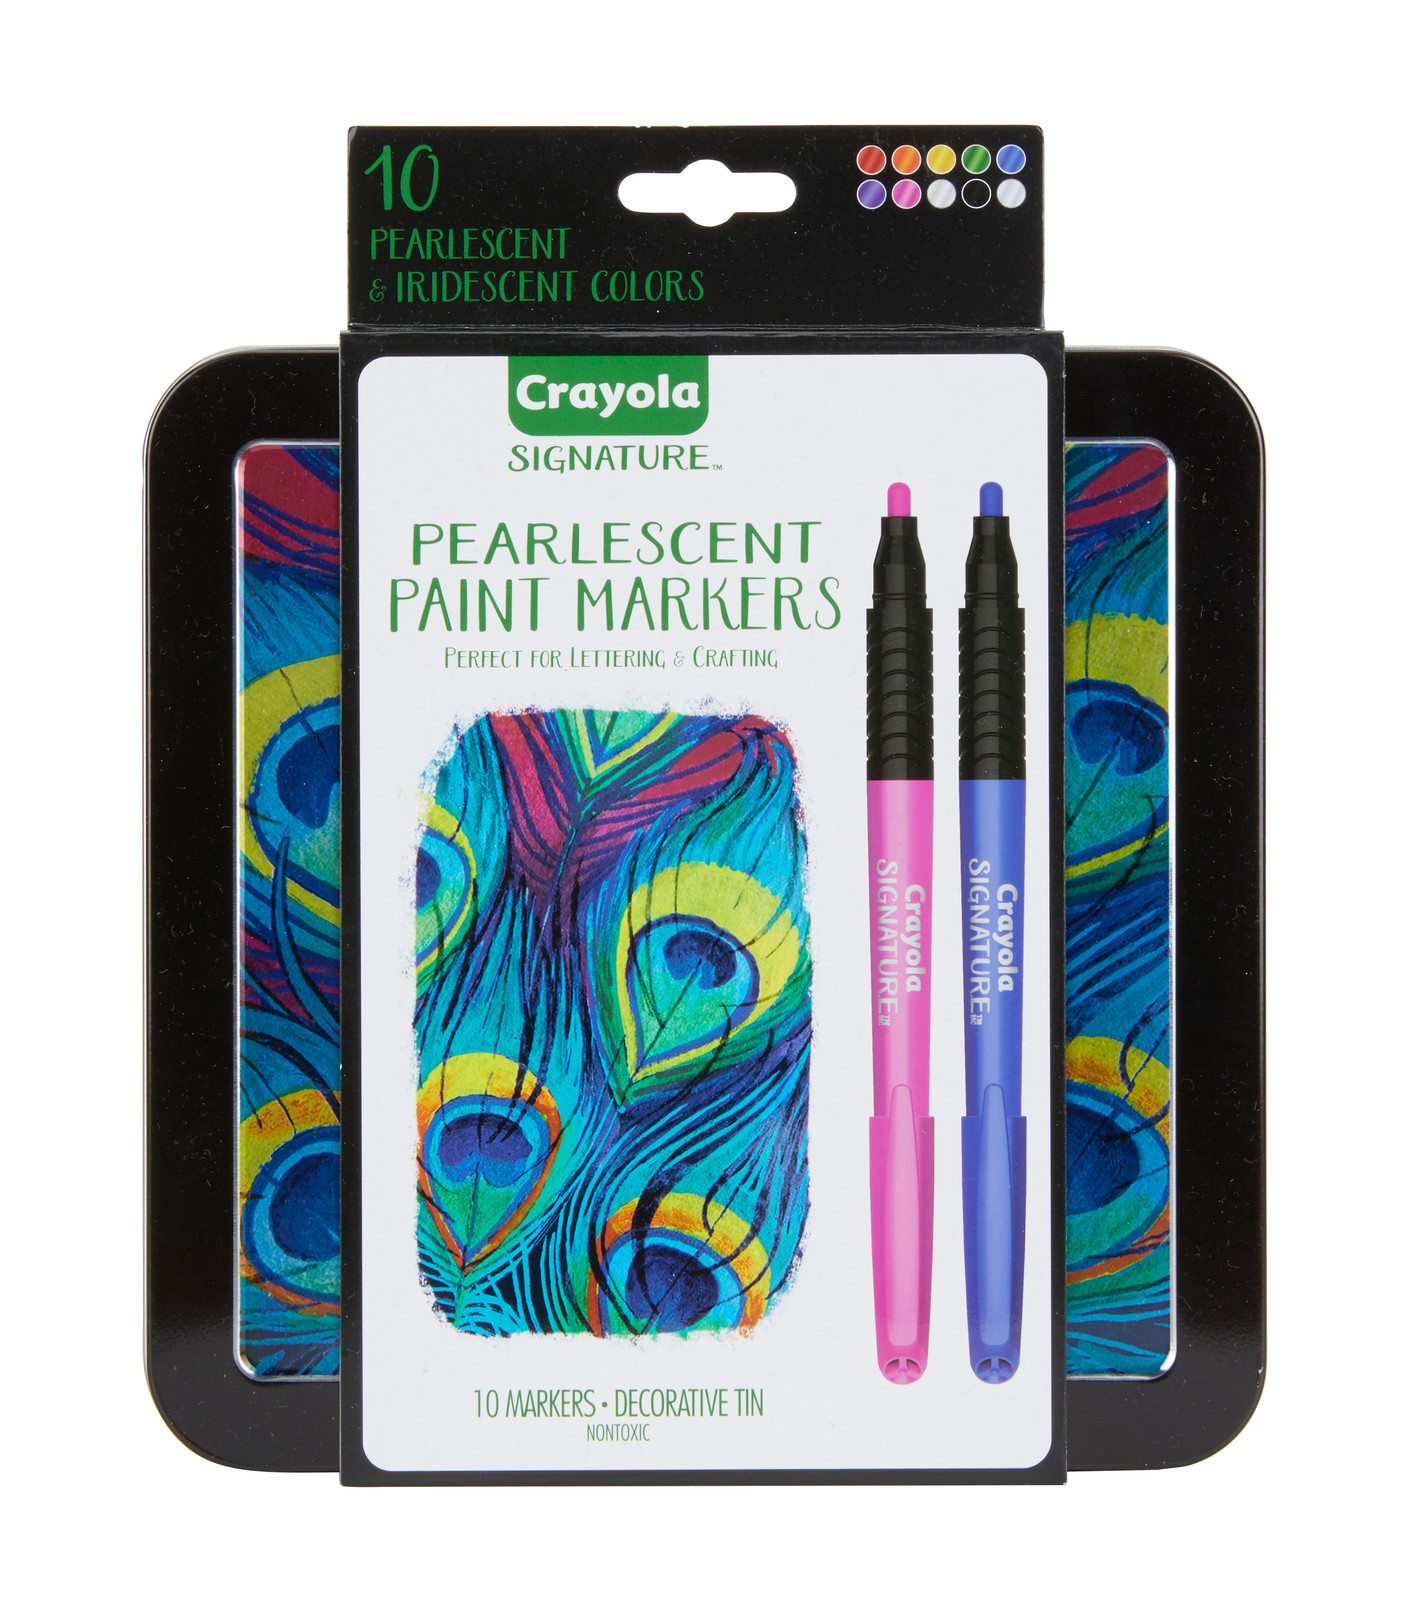 Crayola: Signature - Pearlescent Paint Markers (10 Pack) image